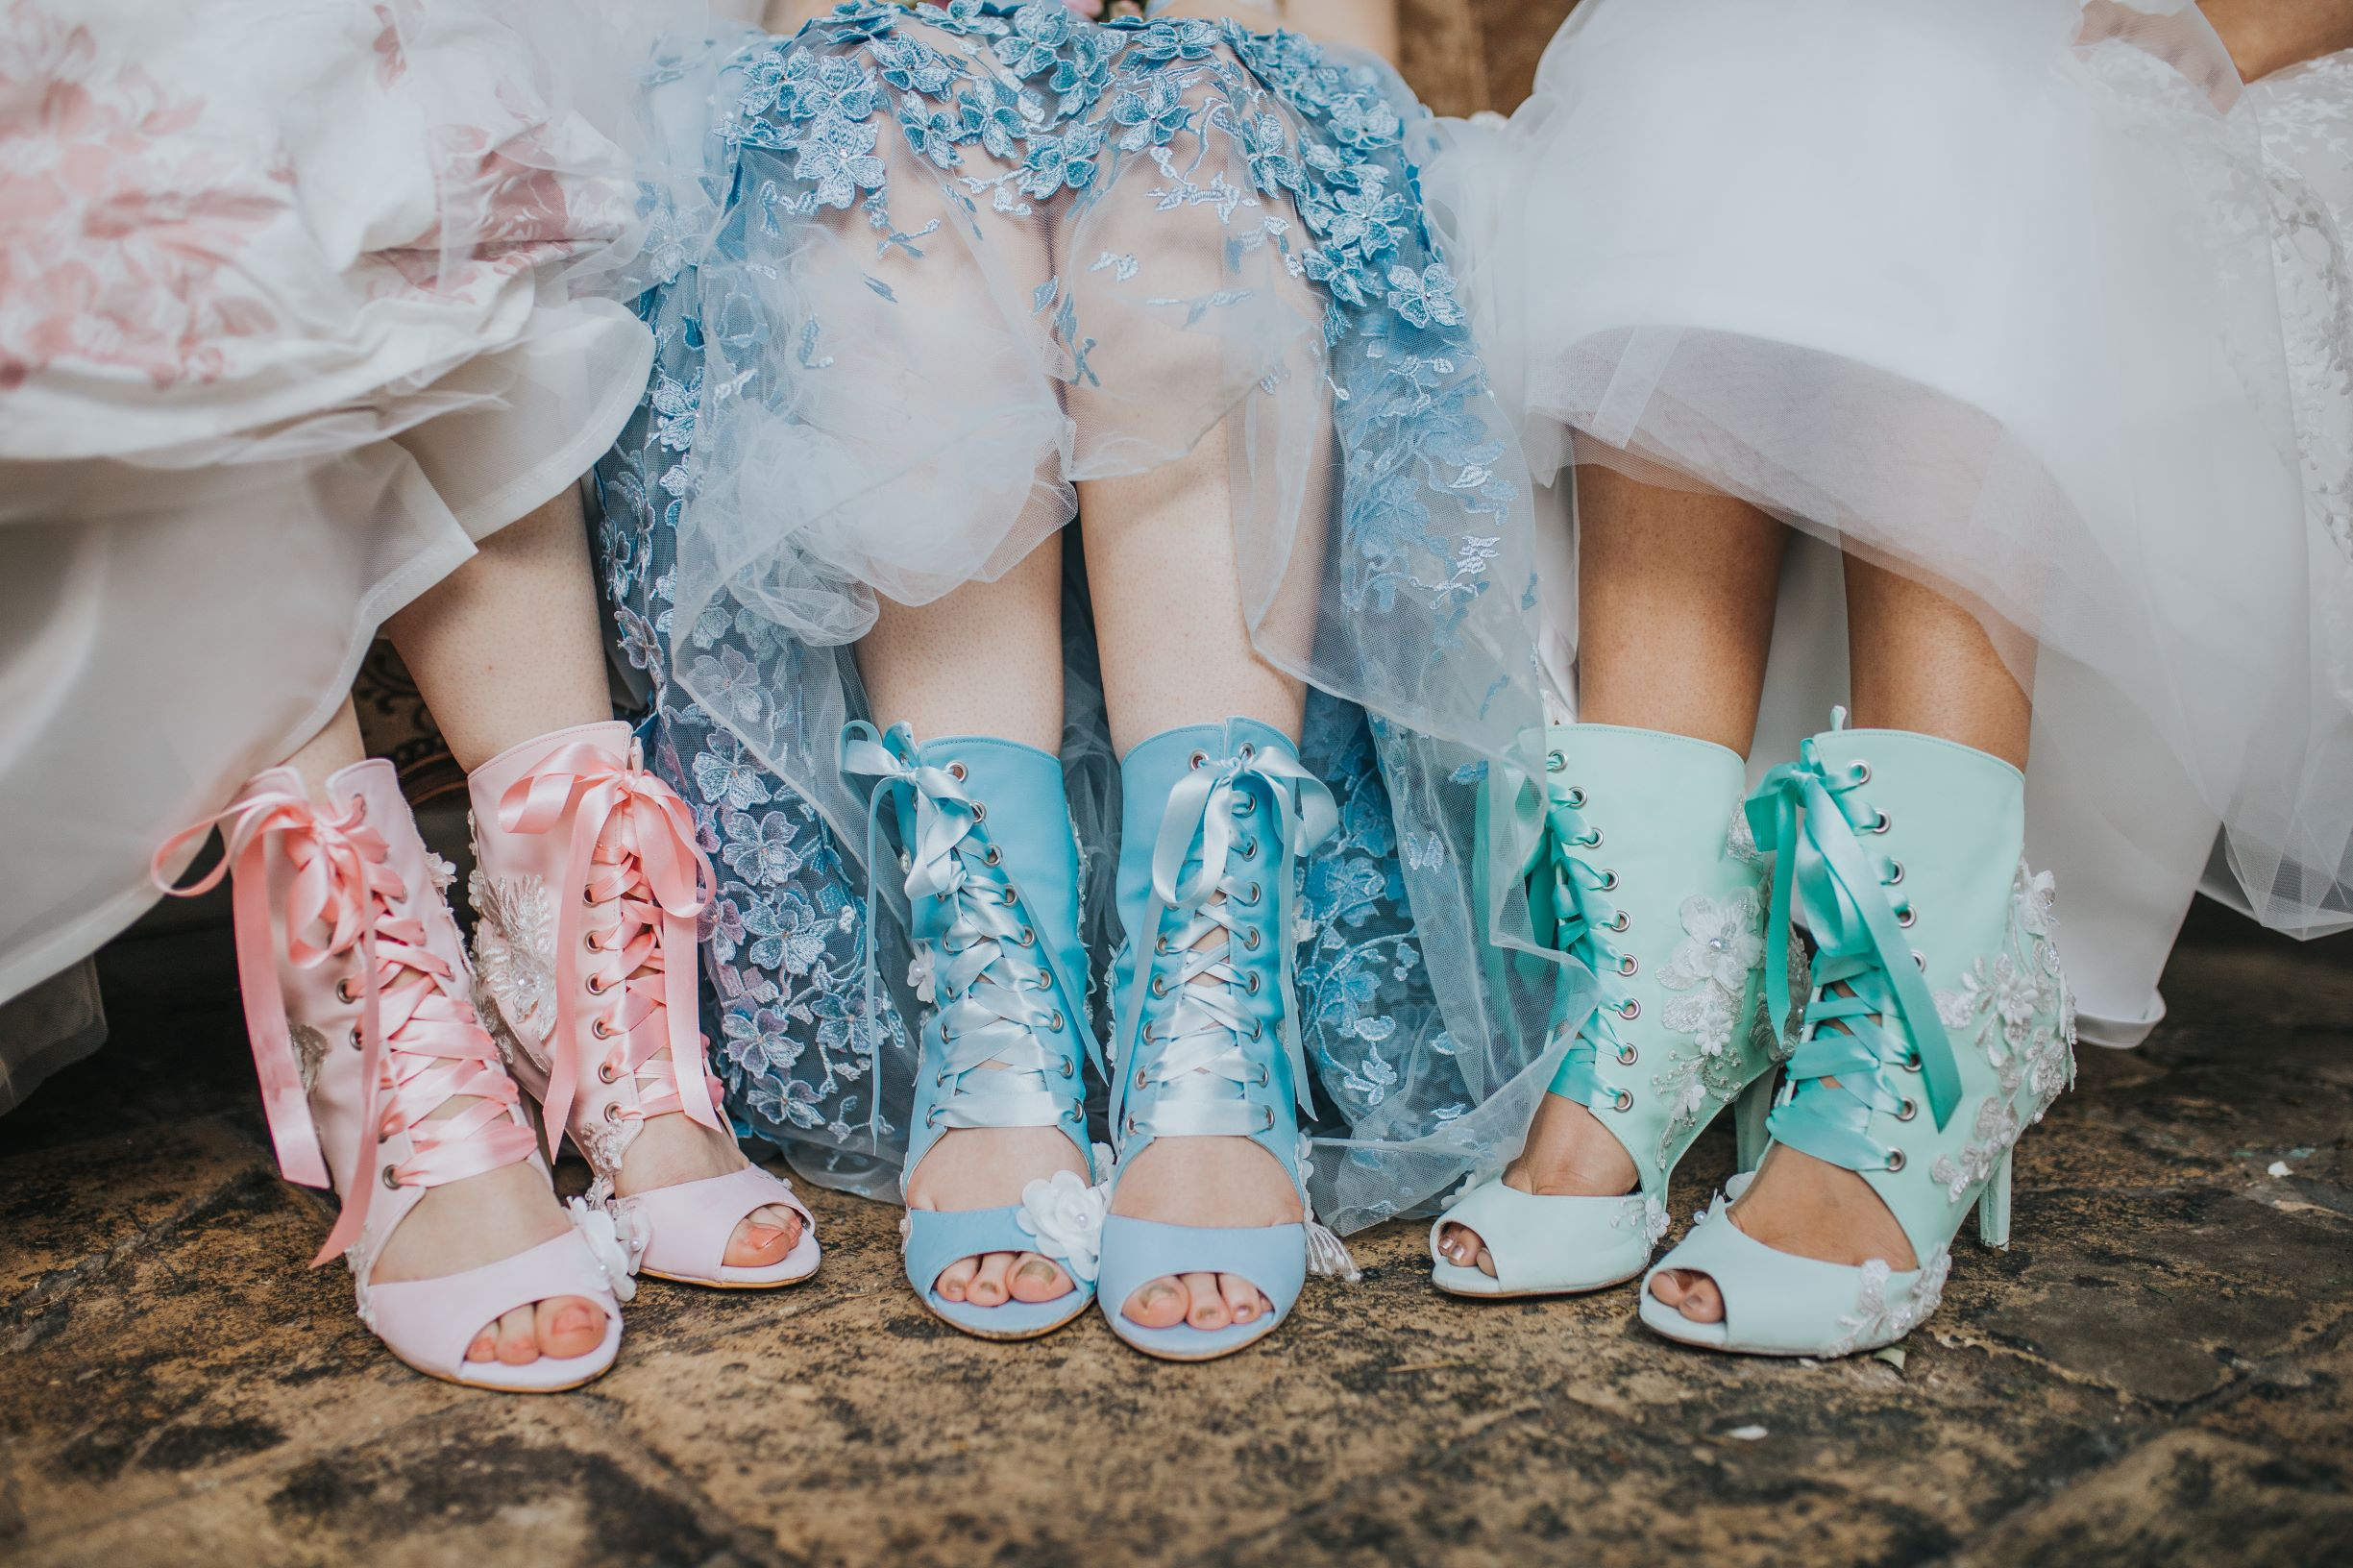 Whimsical wedding- Laura Beresford Photography- unconventional wedding- alternative wedding- colourful wedding shoes- wedding boots- unique wedding boots- colourful brides